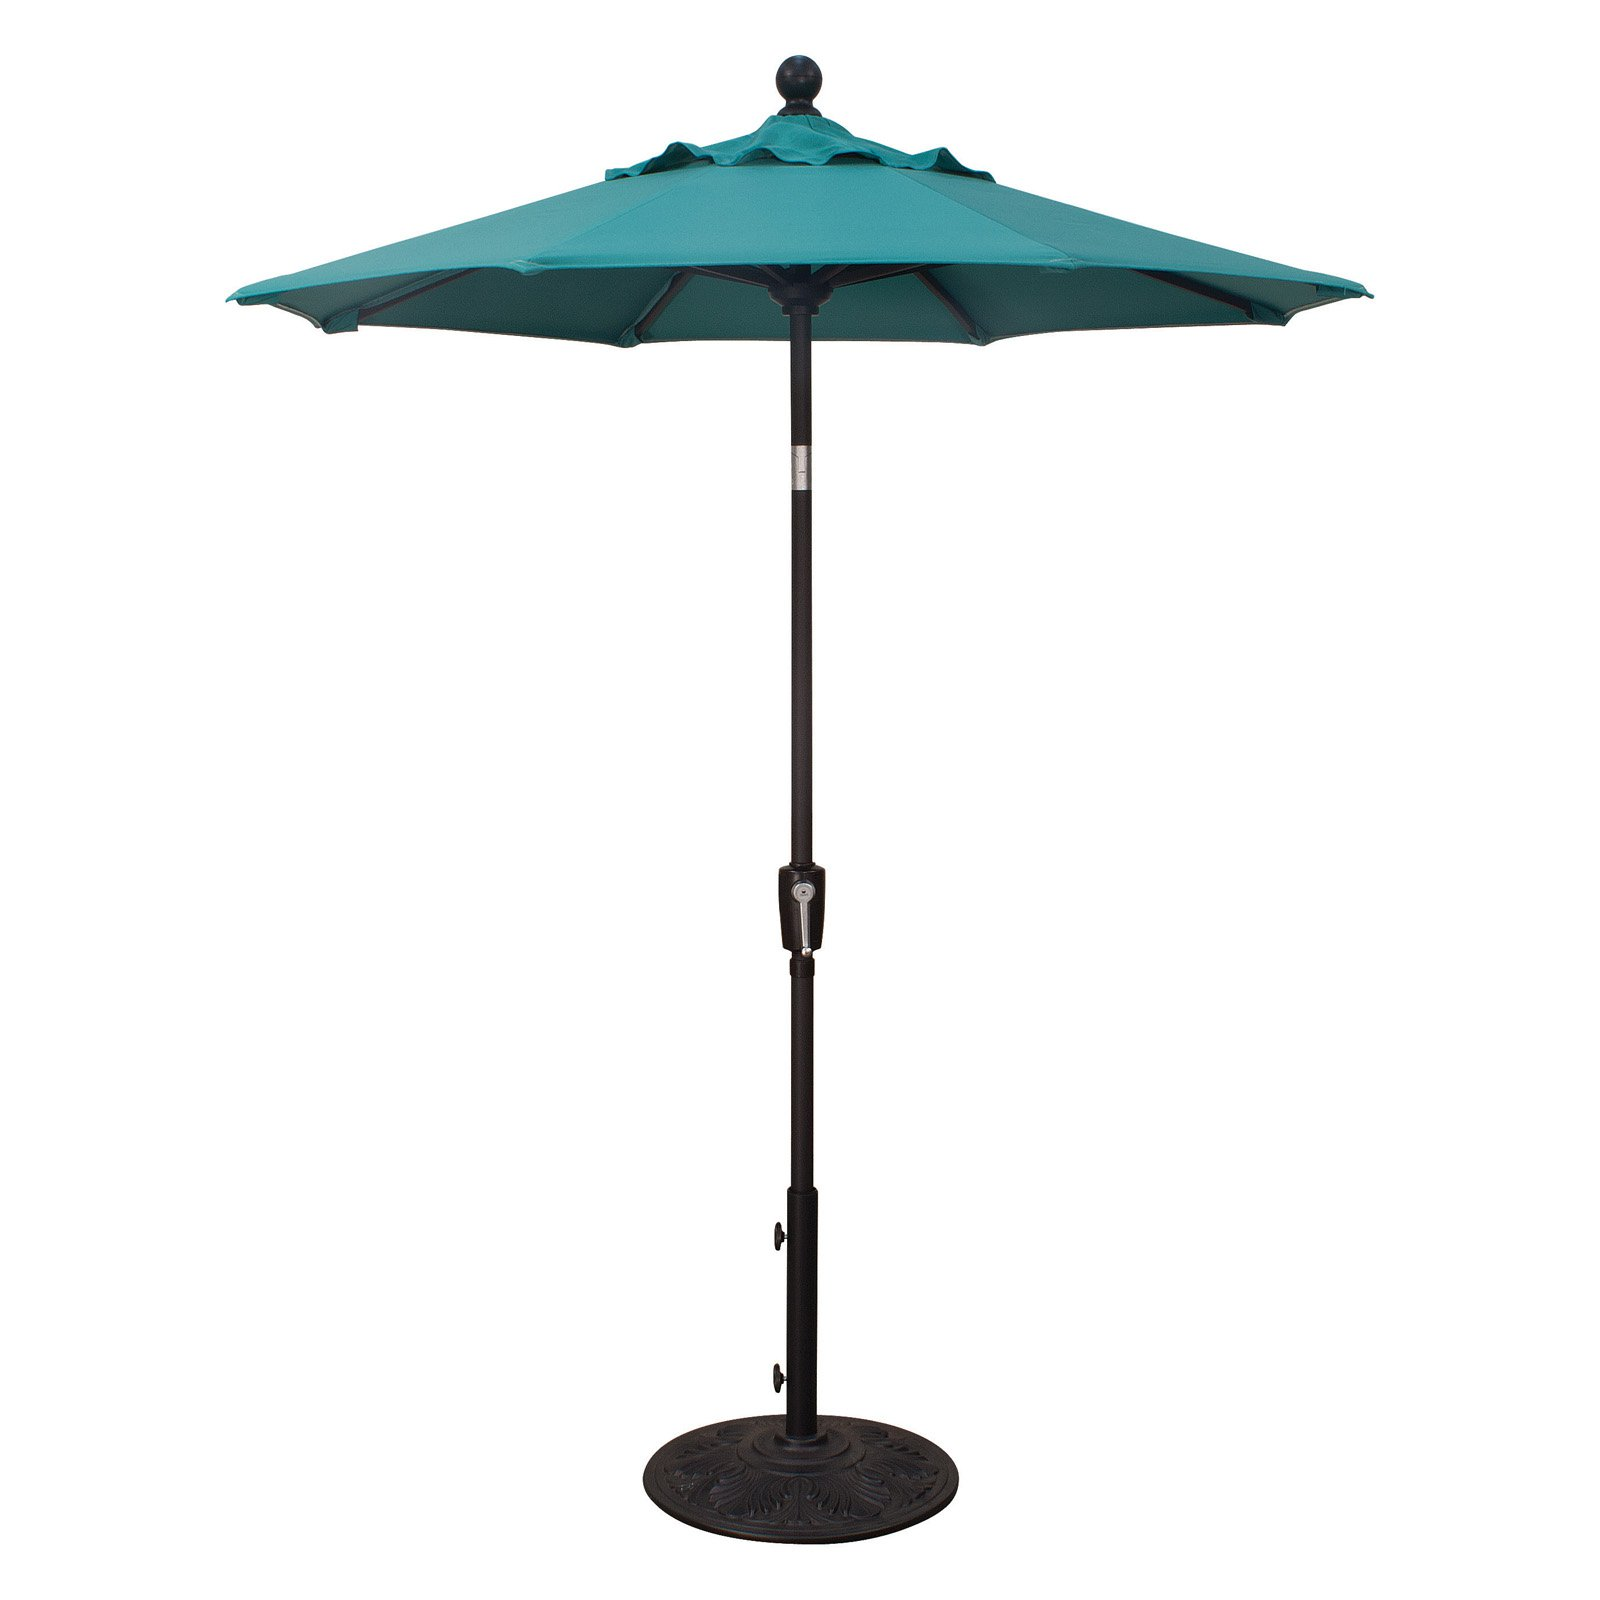 treasure garden 6 ft. obravia push button tilt patio umbrella 6 Ft Patio Umbrella